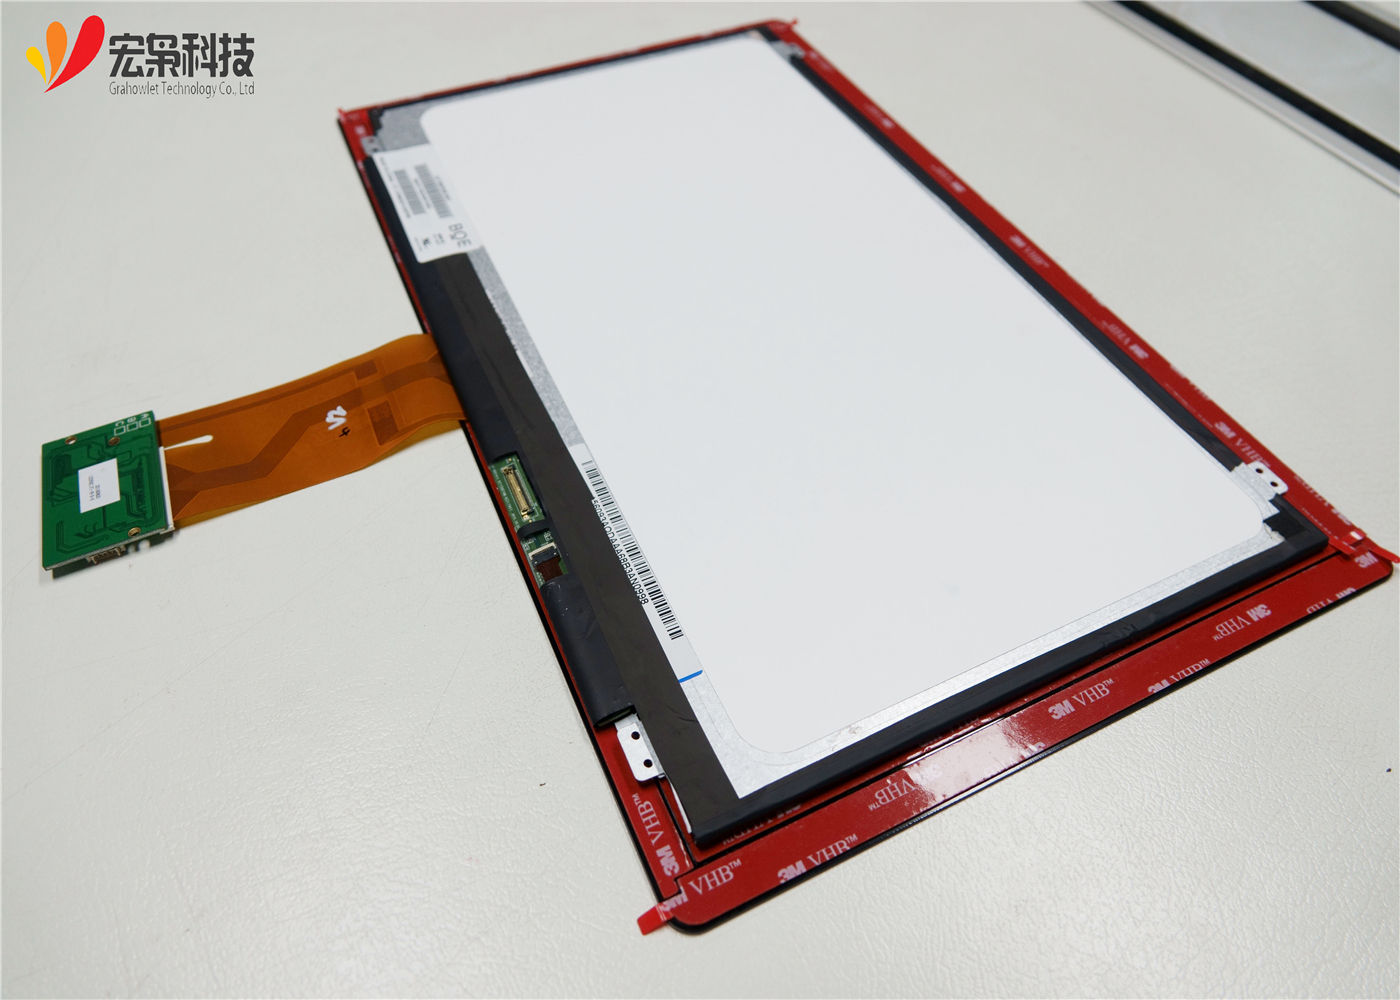 Customize PCAP touch screen 15,156,17,17.3,18.5,19 inch touch panel with tft lcd display for PC/Computer